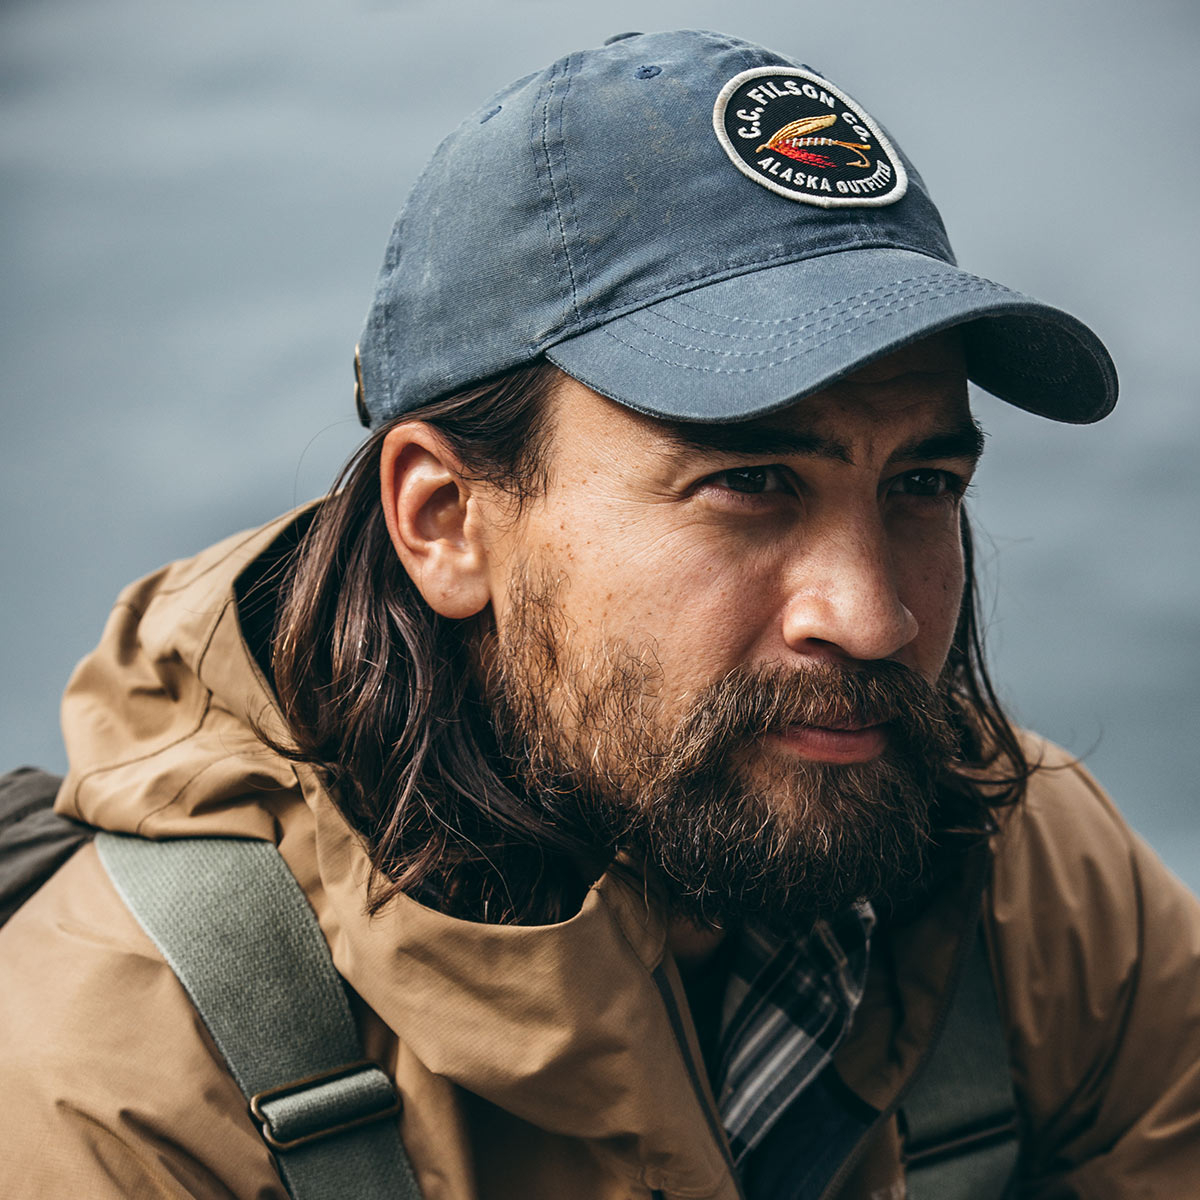 Filson Sail Cloth Low-Profile Cap Slate, low-profile cap that protects from the elements